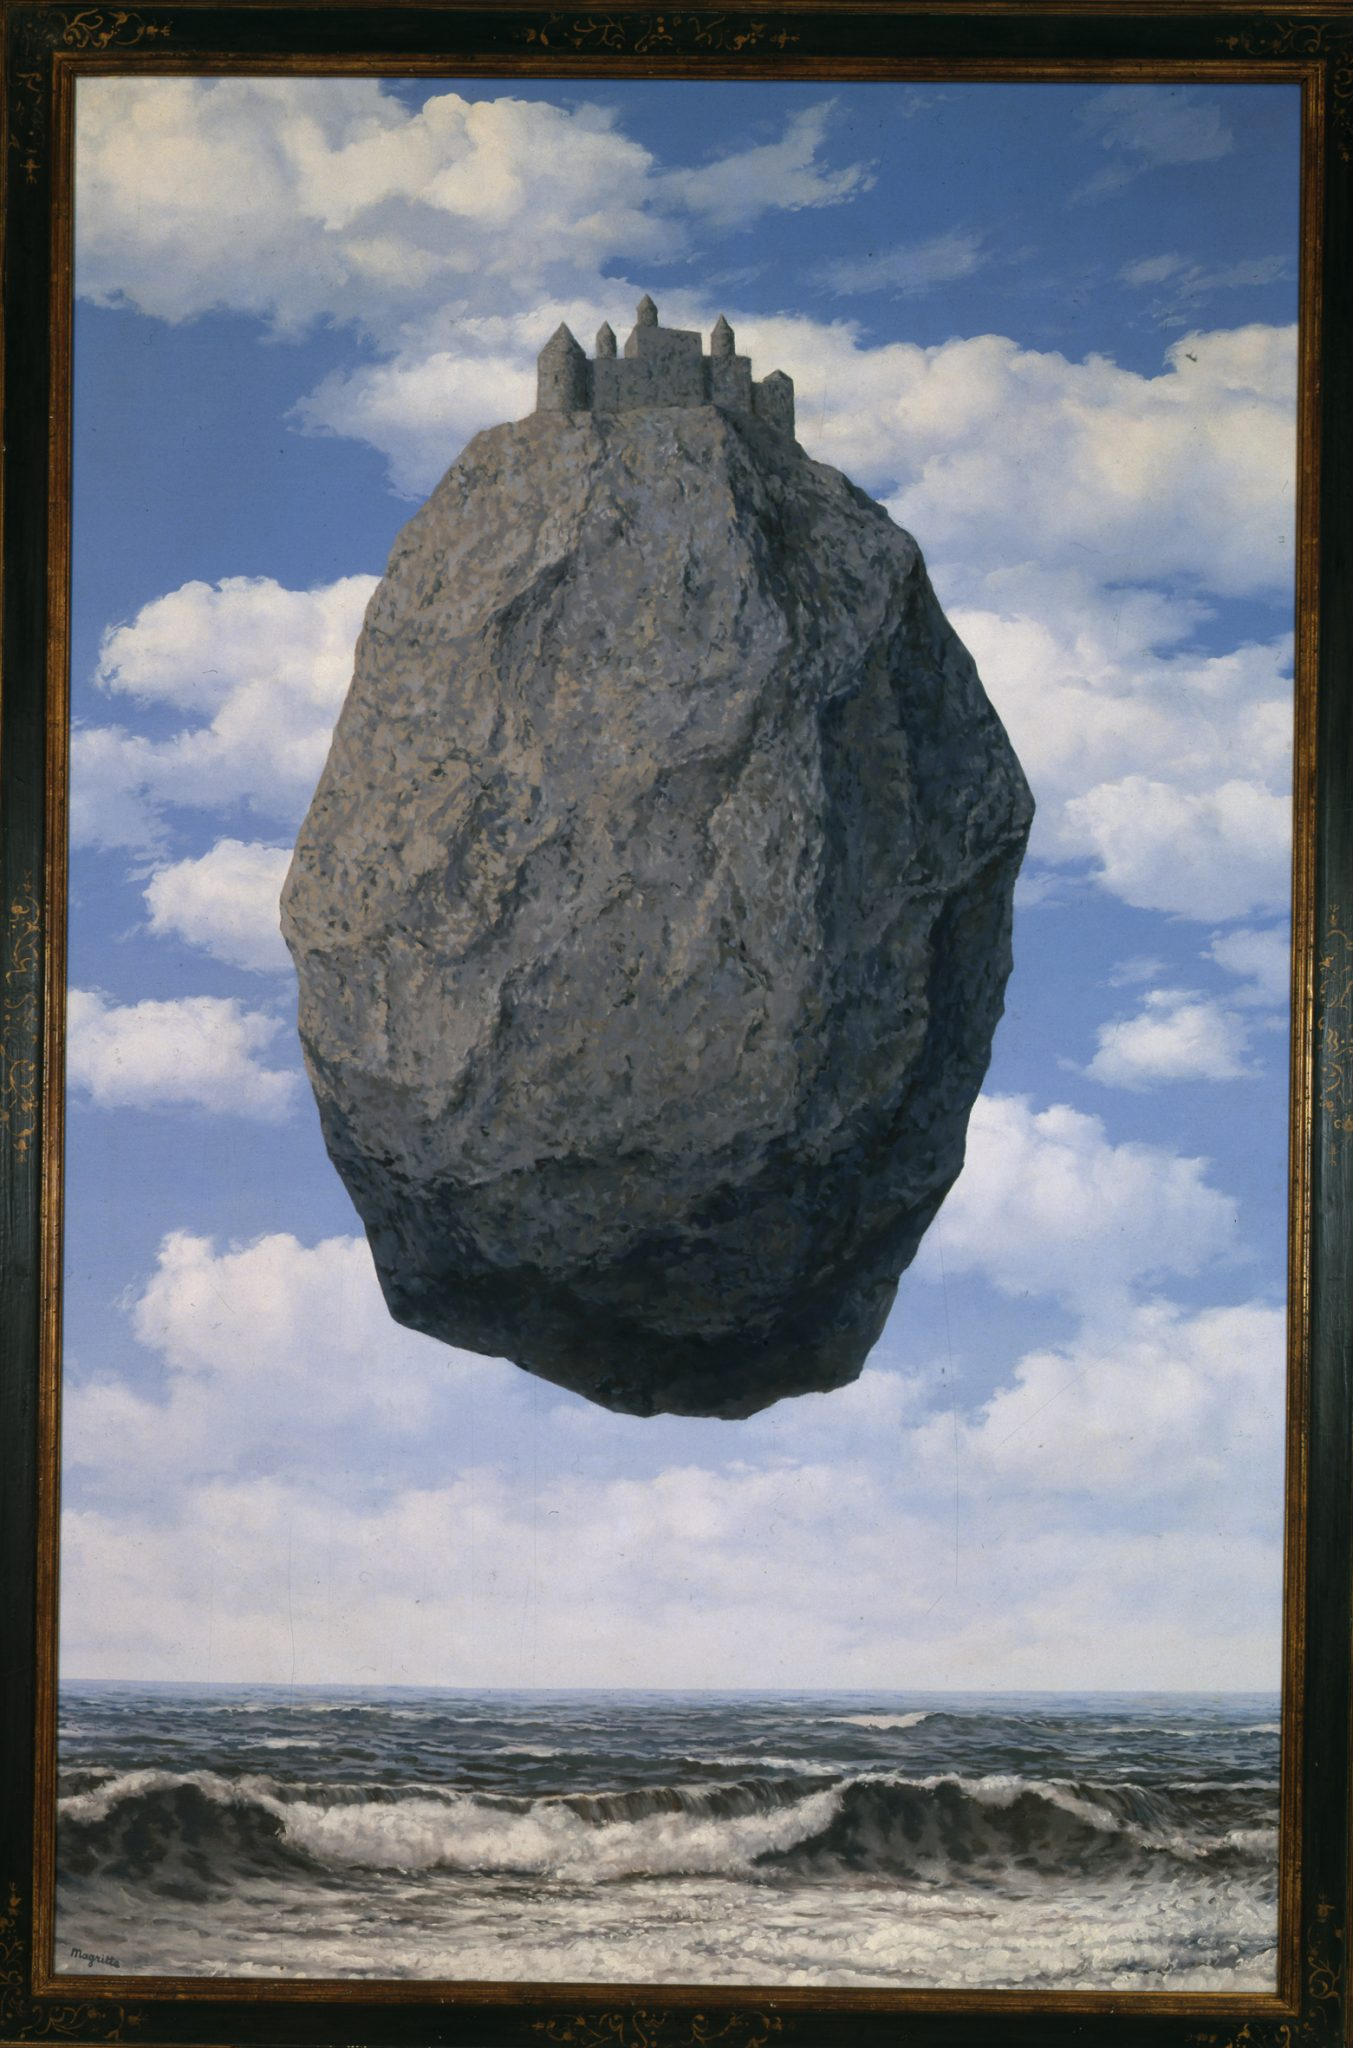 Renè Magritte, Belgian, 1898-1967 Le Chateau de Pyrenees (The Castle of the Pyrenees), 1959 Oil on canvas, 200x145 cm The Israel Museum, Jerusalem Gift of Harry Torczyner, New York B85.0081 Photo © The Israel Museum, Jerusalem by Moshe Caine © Renè Magritte by SIAE 2017